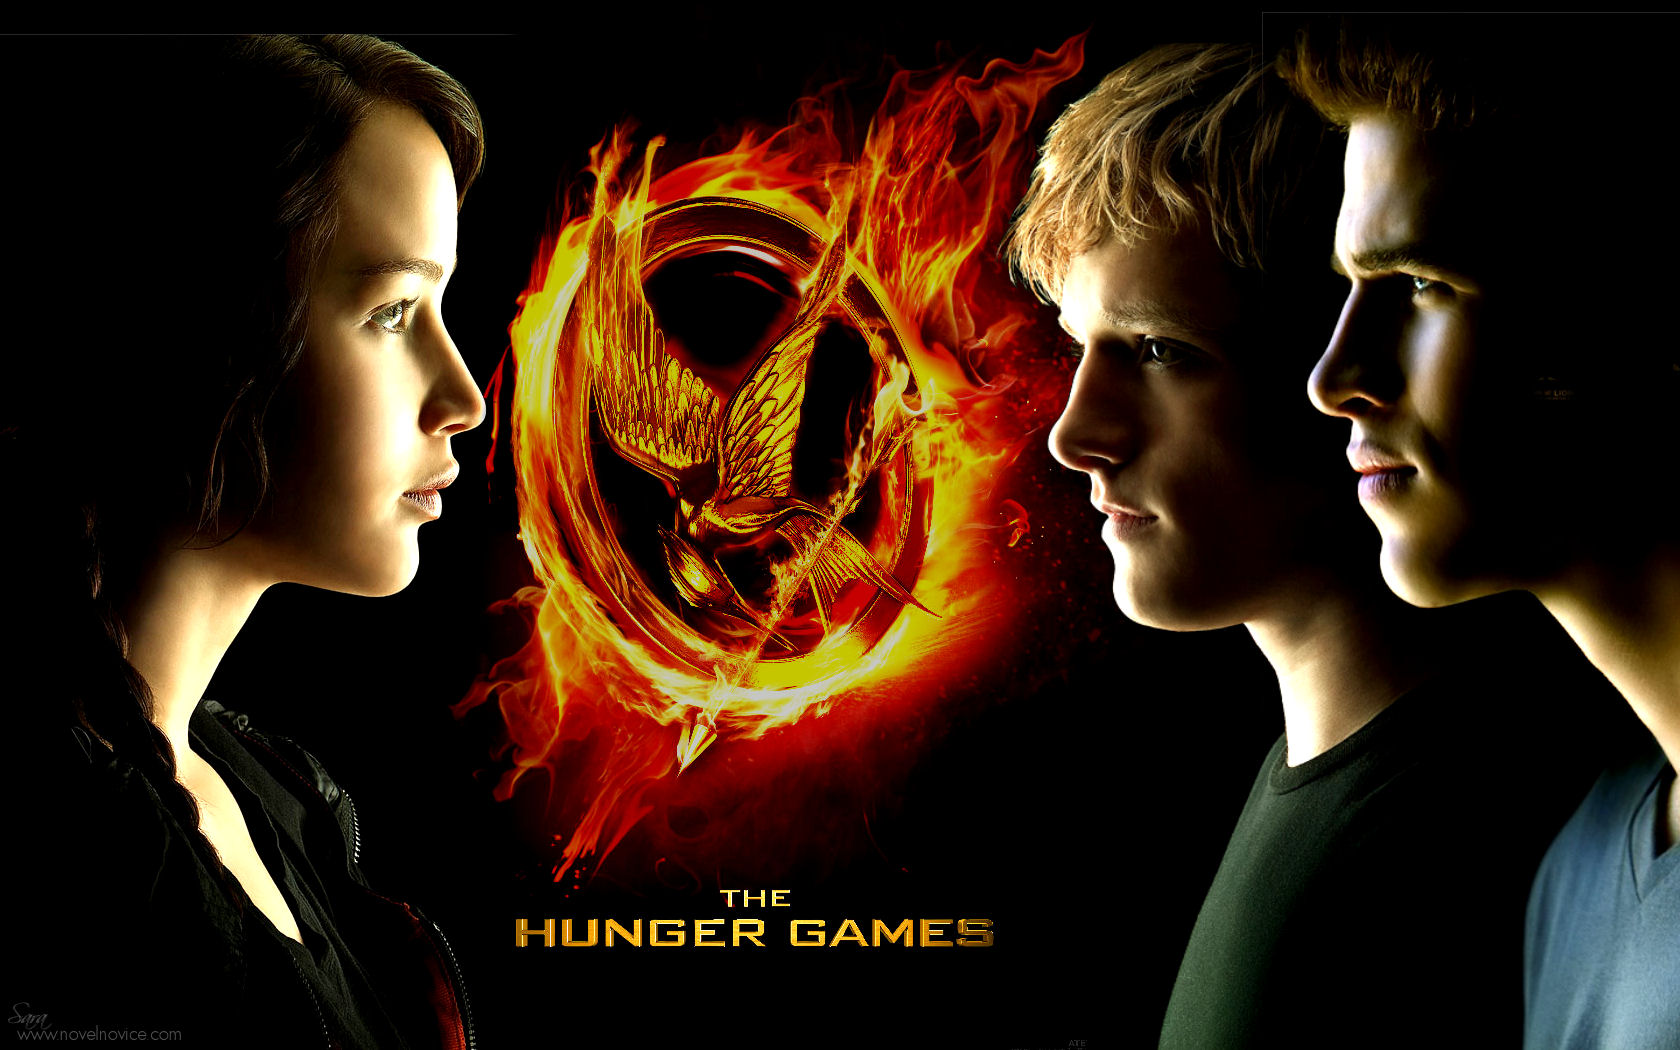 Hunger Games Movie Cover with Mockingjay pin, profiles of Katniss, Peeta, and Gale